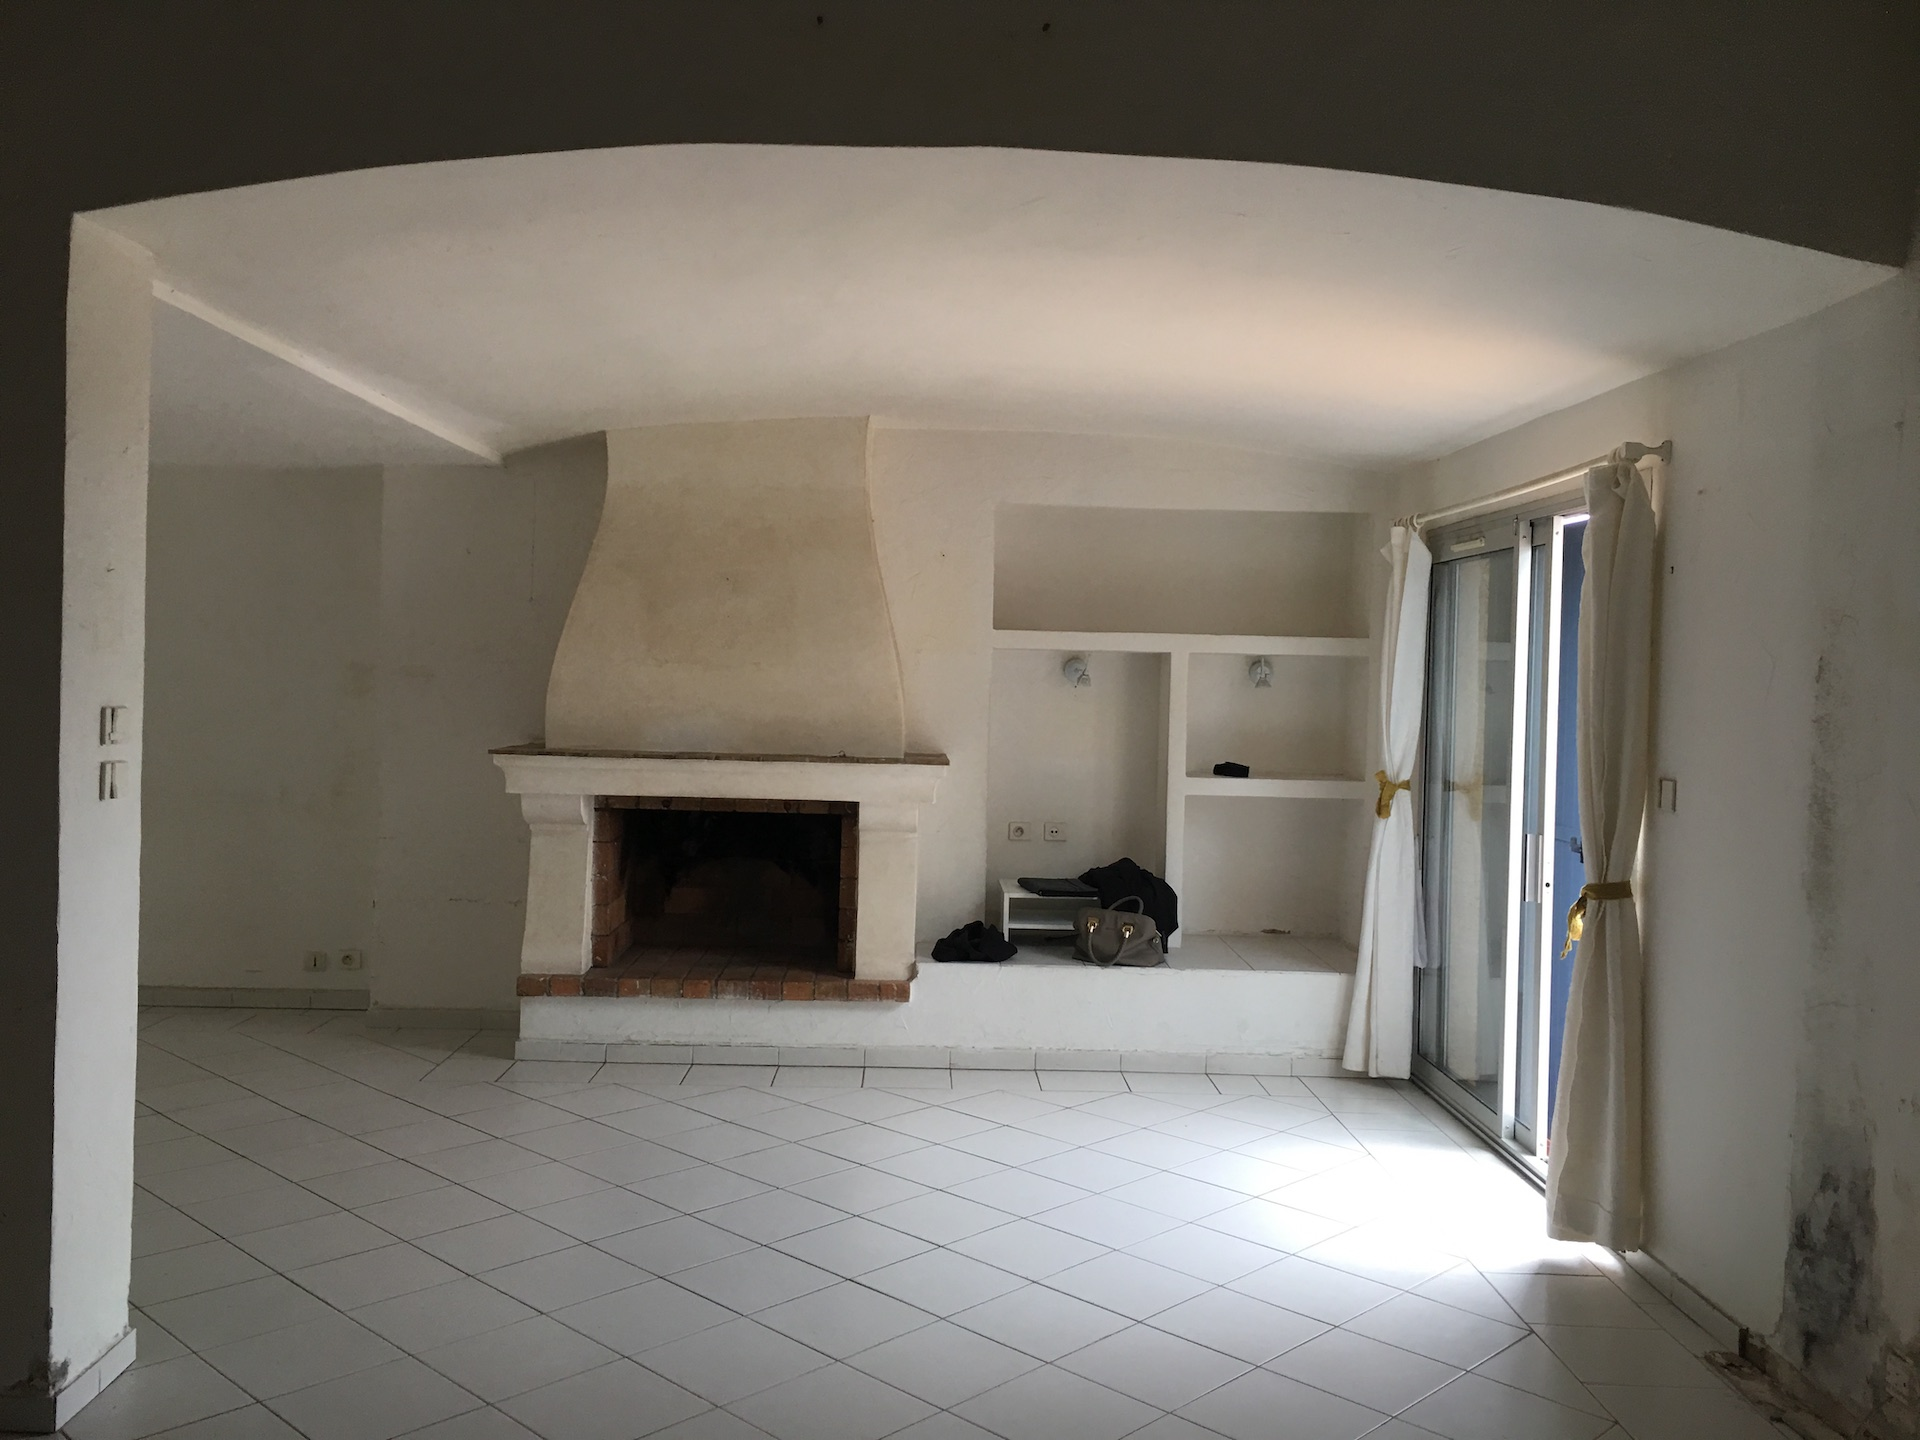 Rénovation-mazet-Sainte-Maxime-La-Croisette-architecte-interieur-var14